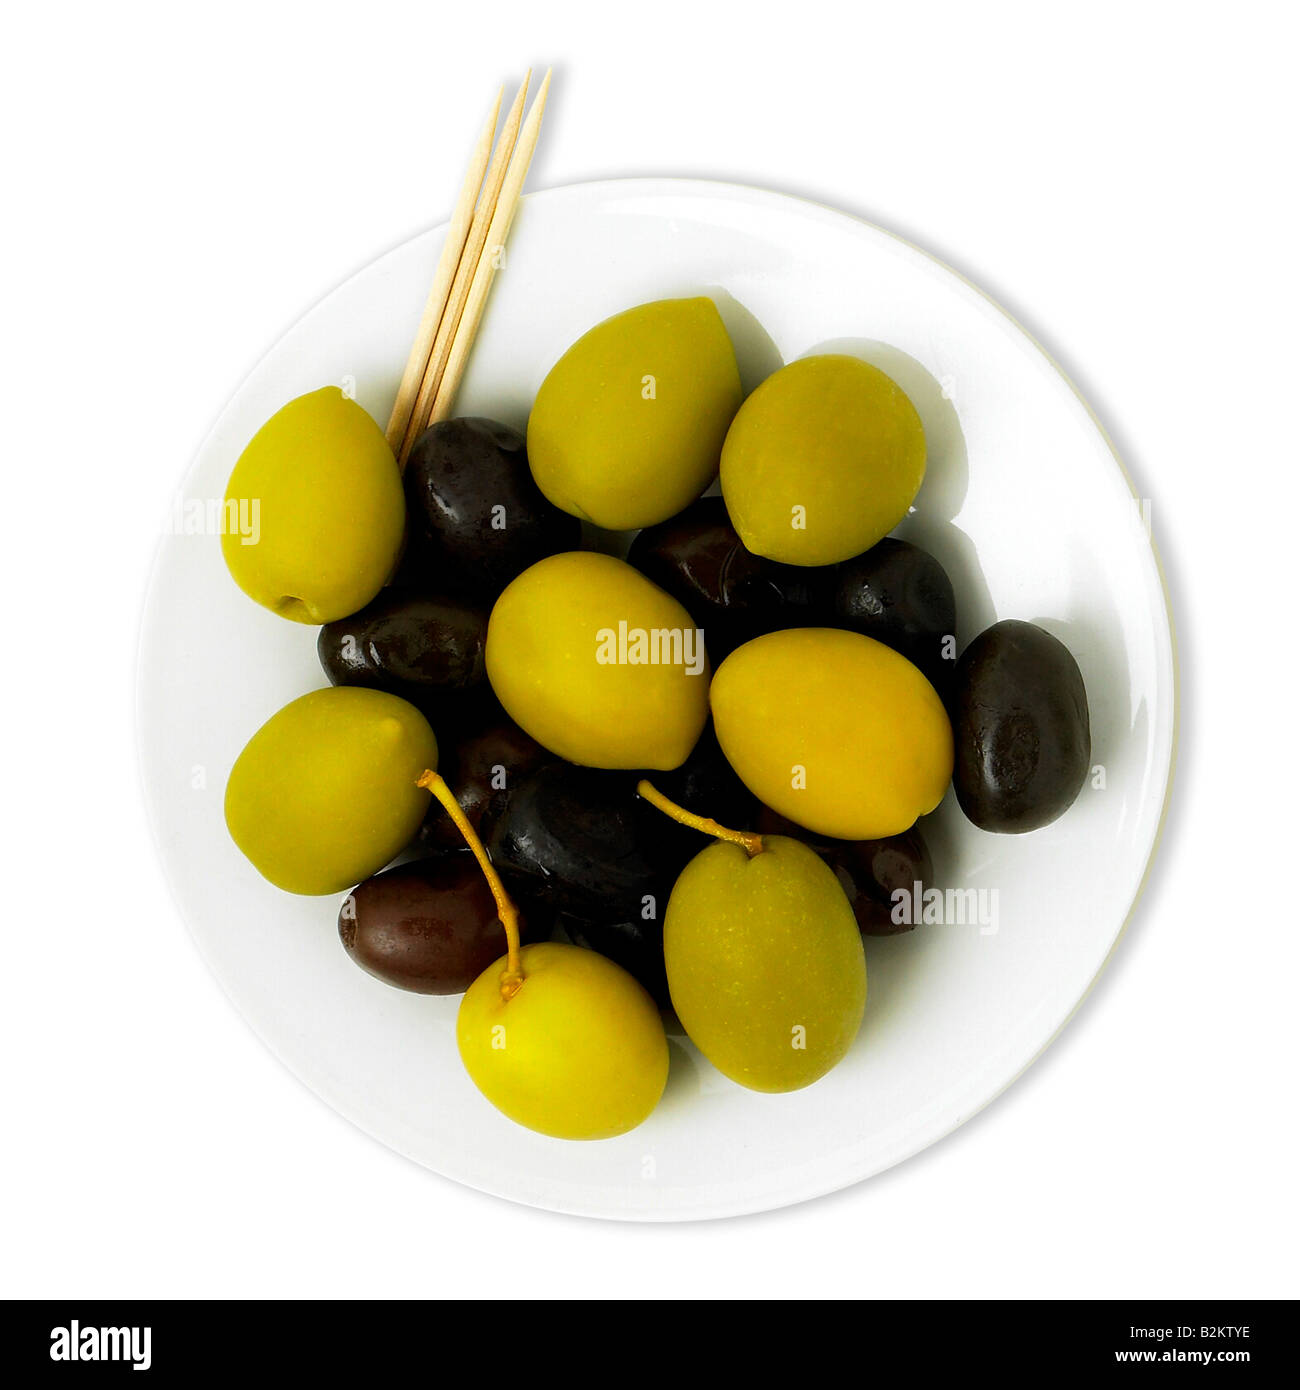 White tray with black and green olives and toothpicks - Stock Image